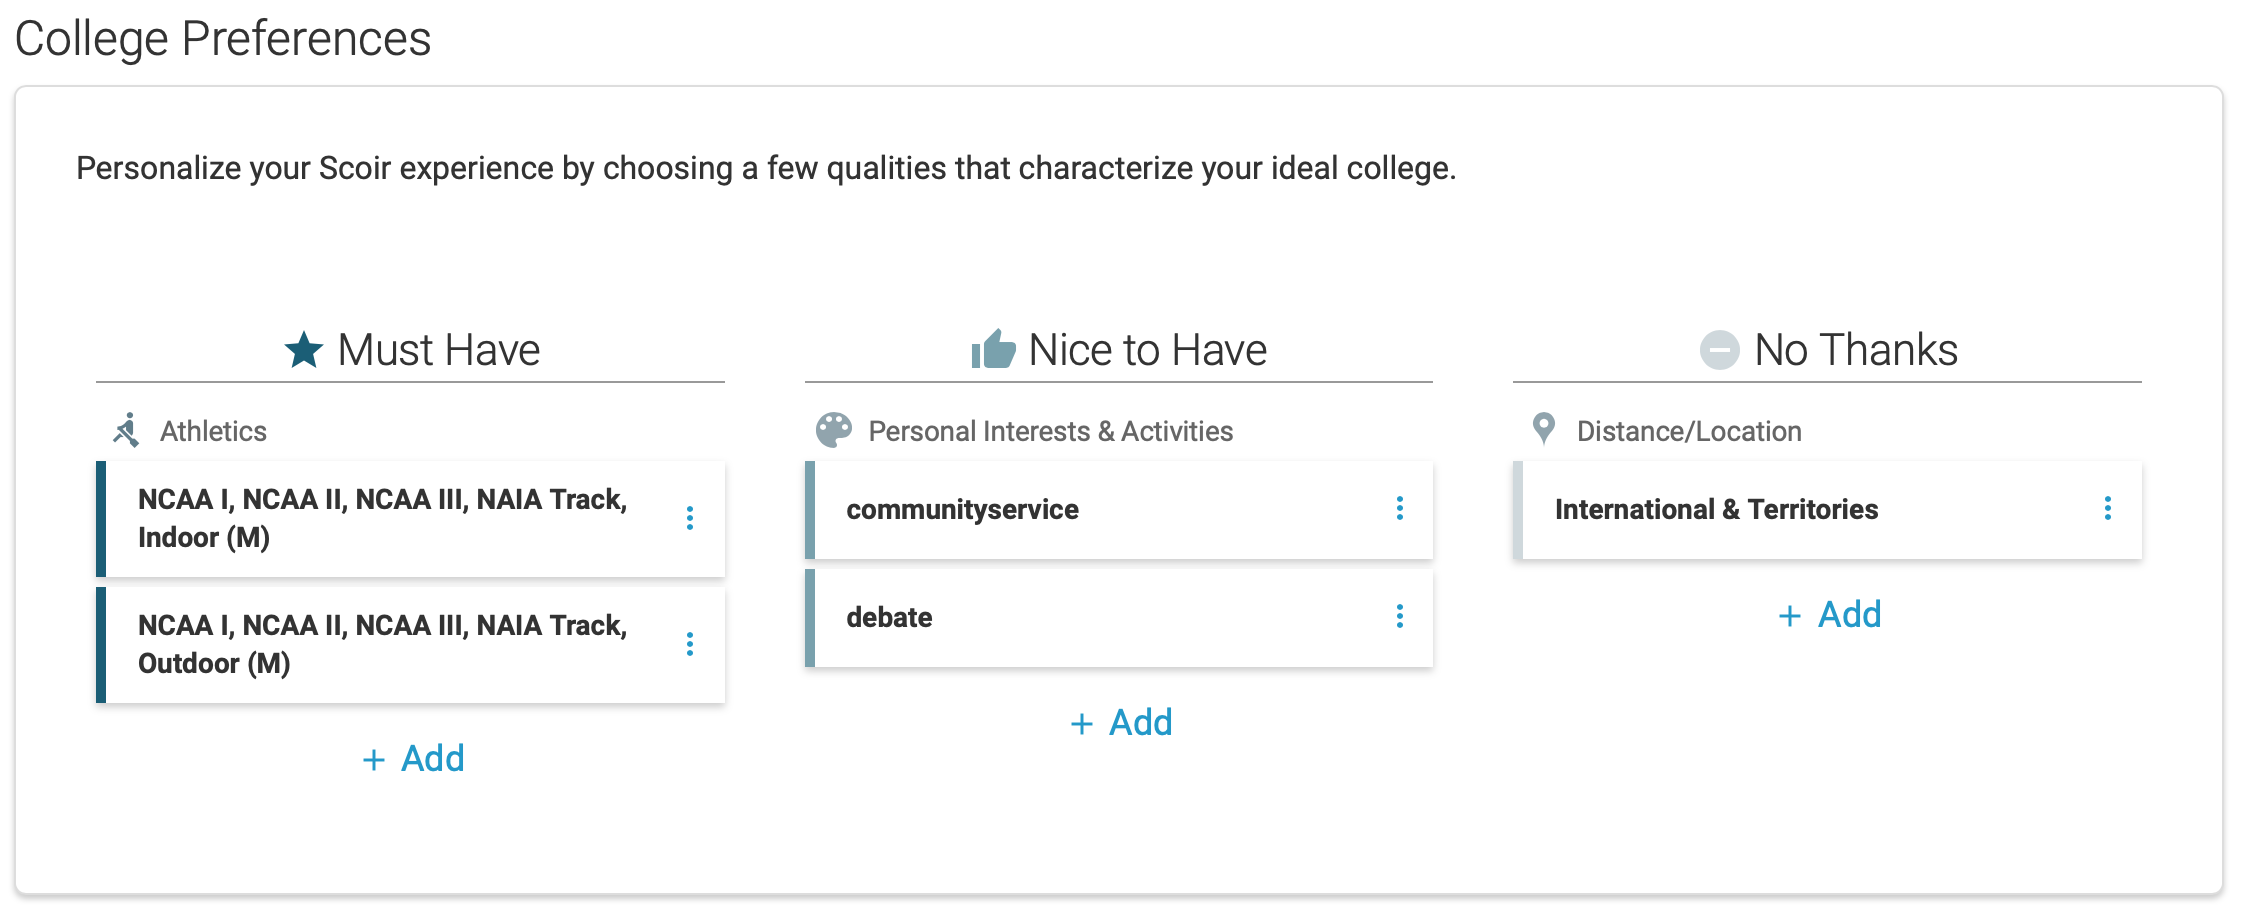 _student_-student-profile-college-preferences.png